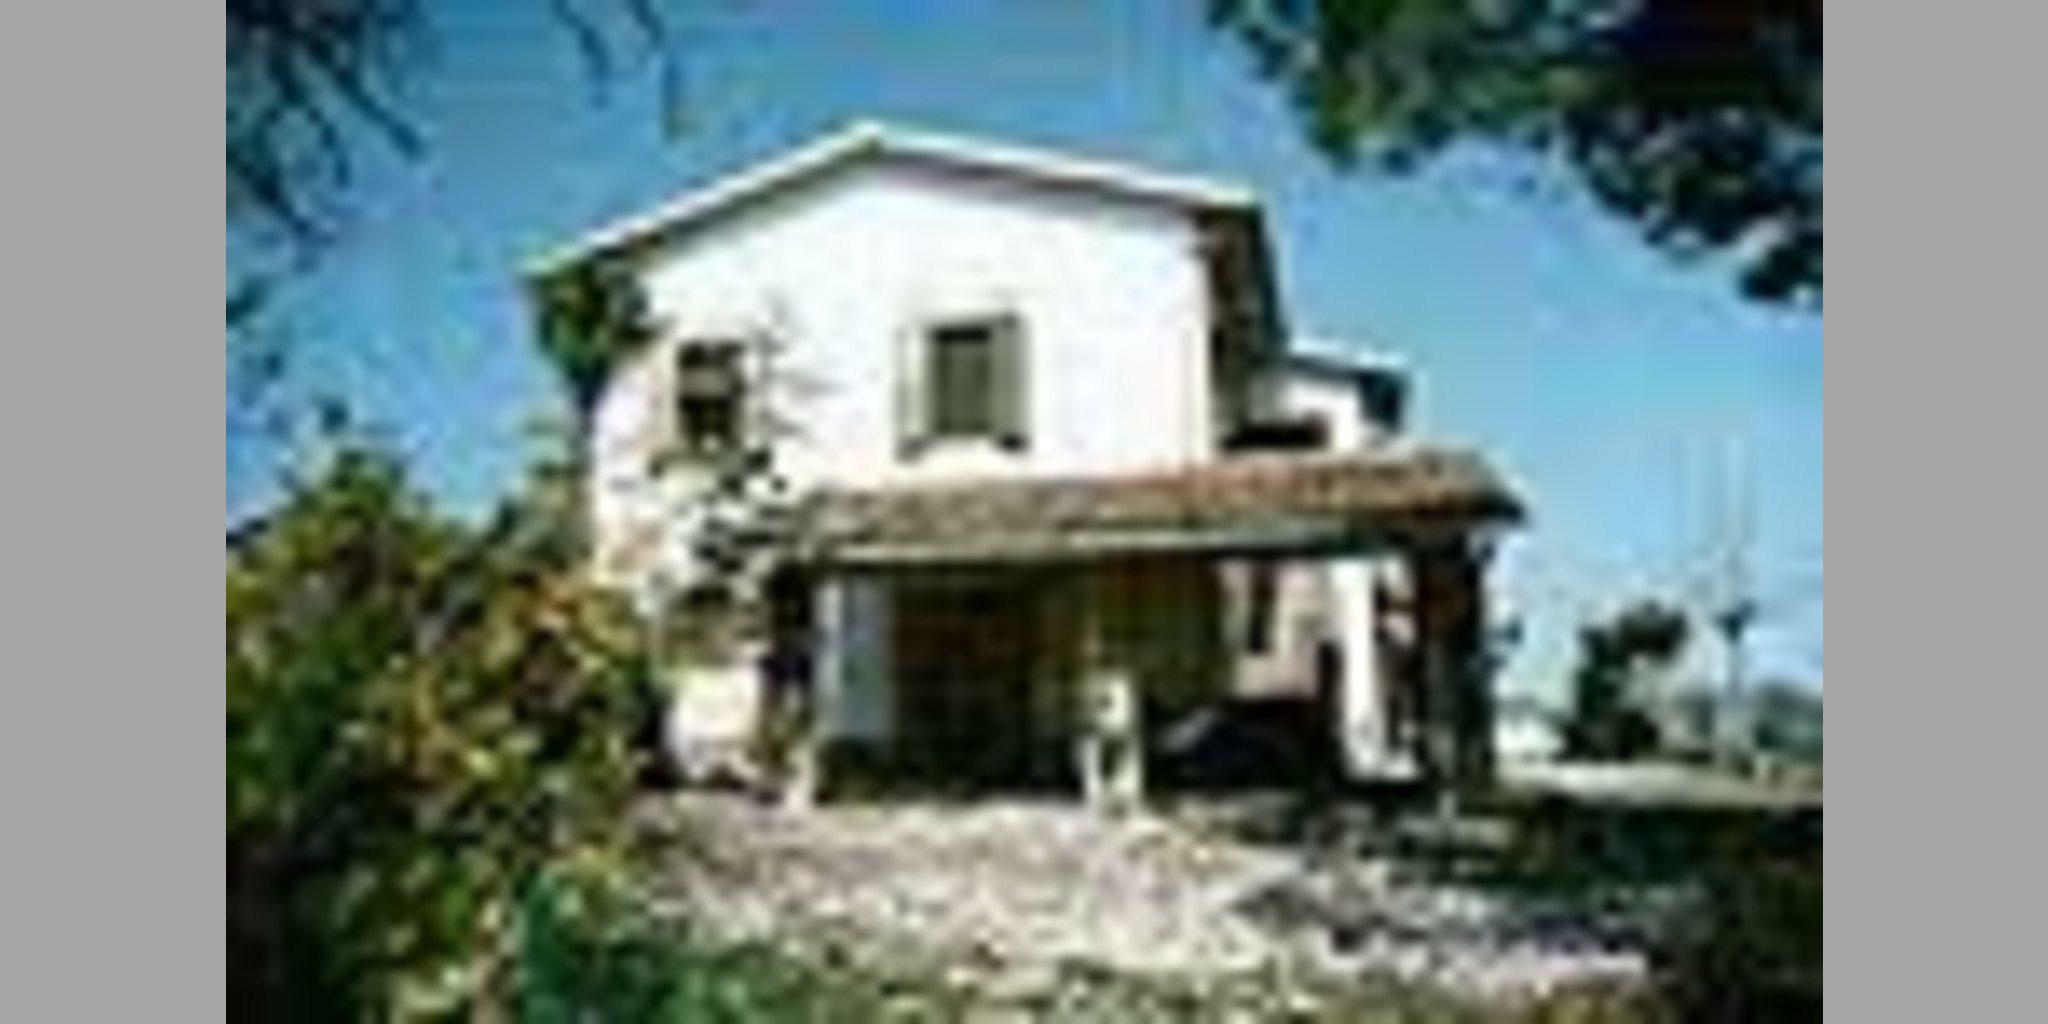 Bed & Breakfast Montecastrilli - Vocabolo S.Martino